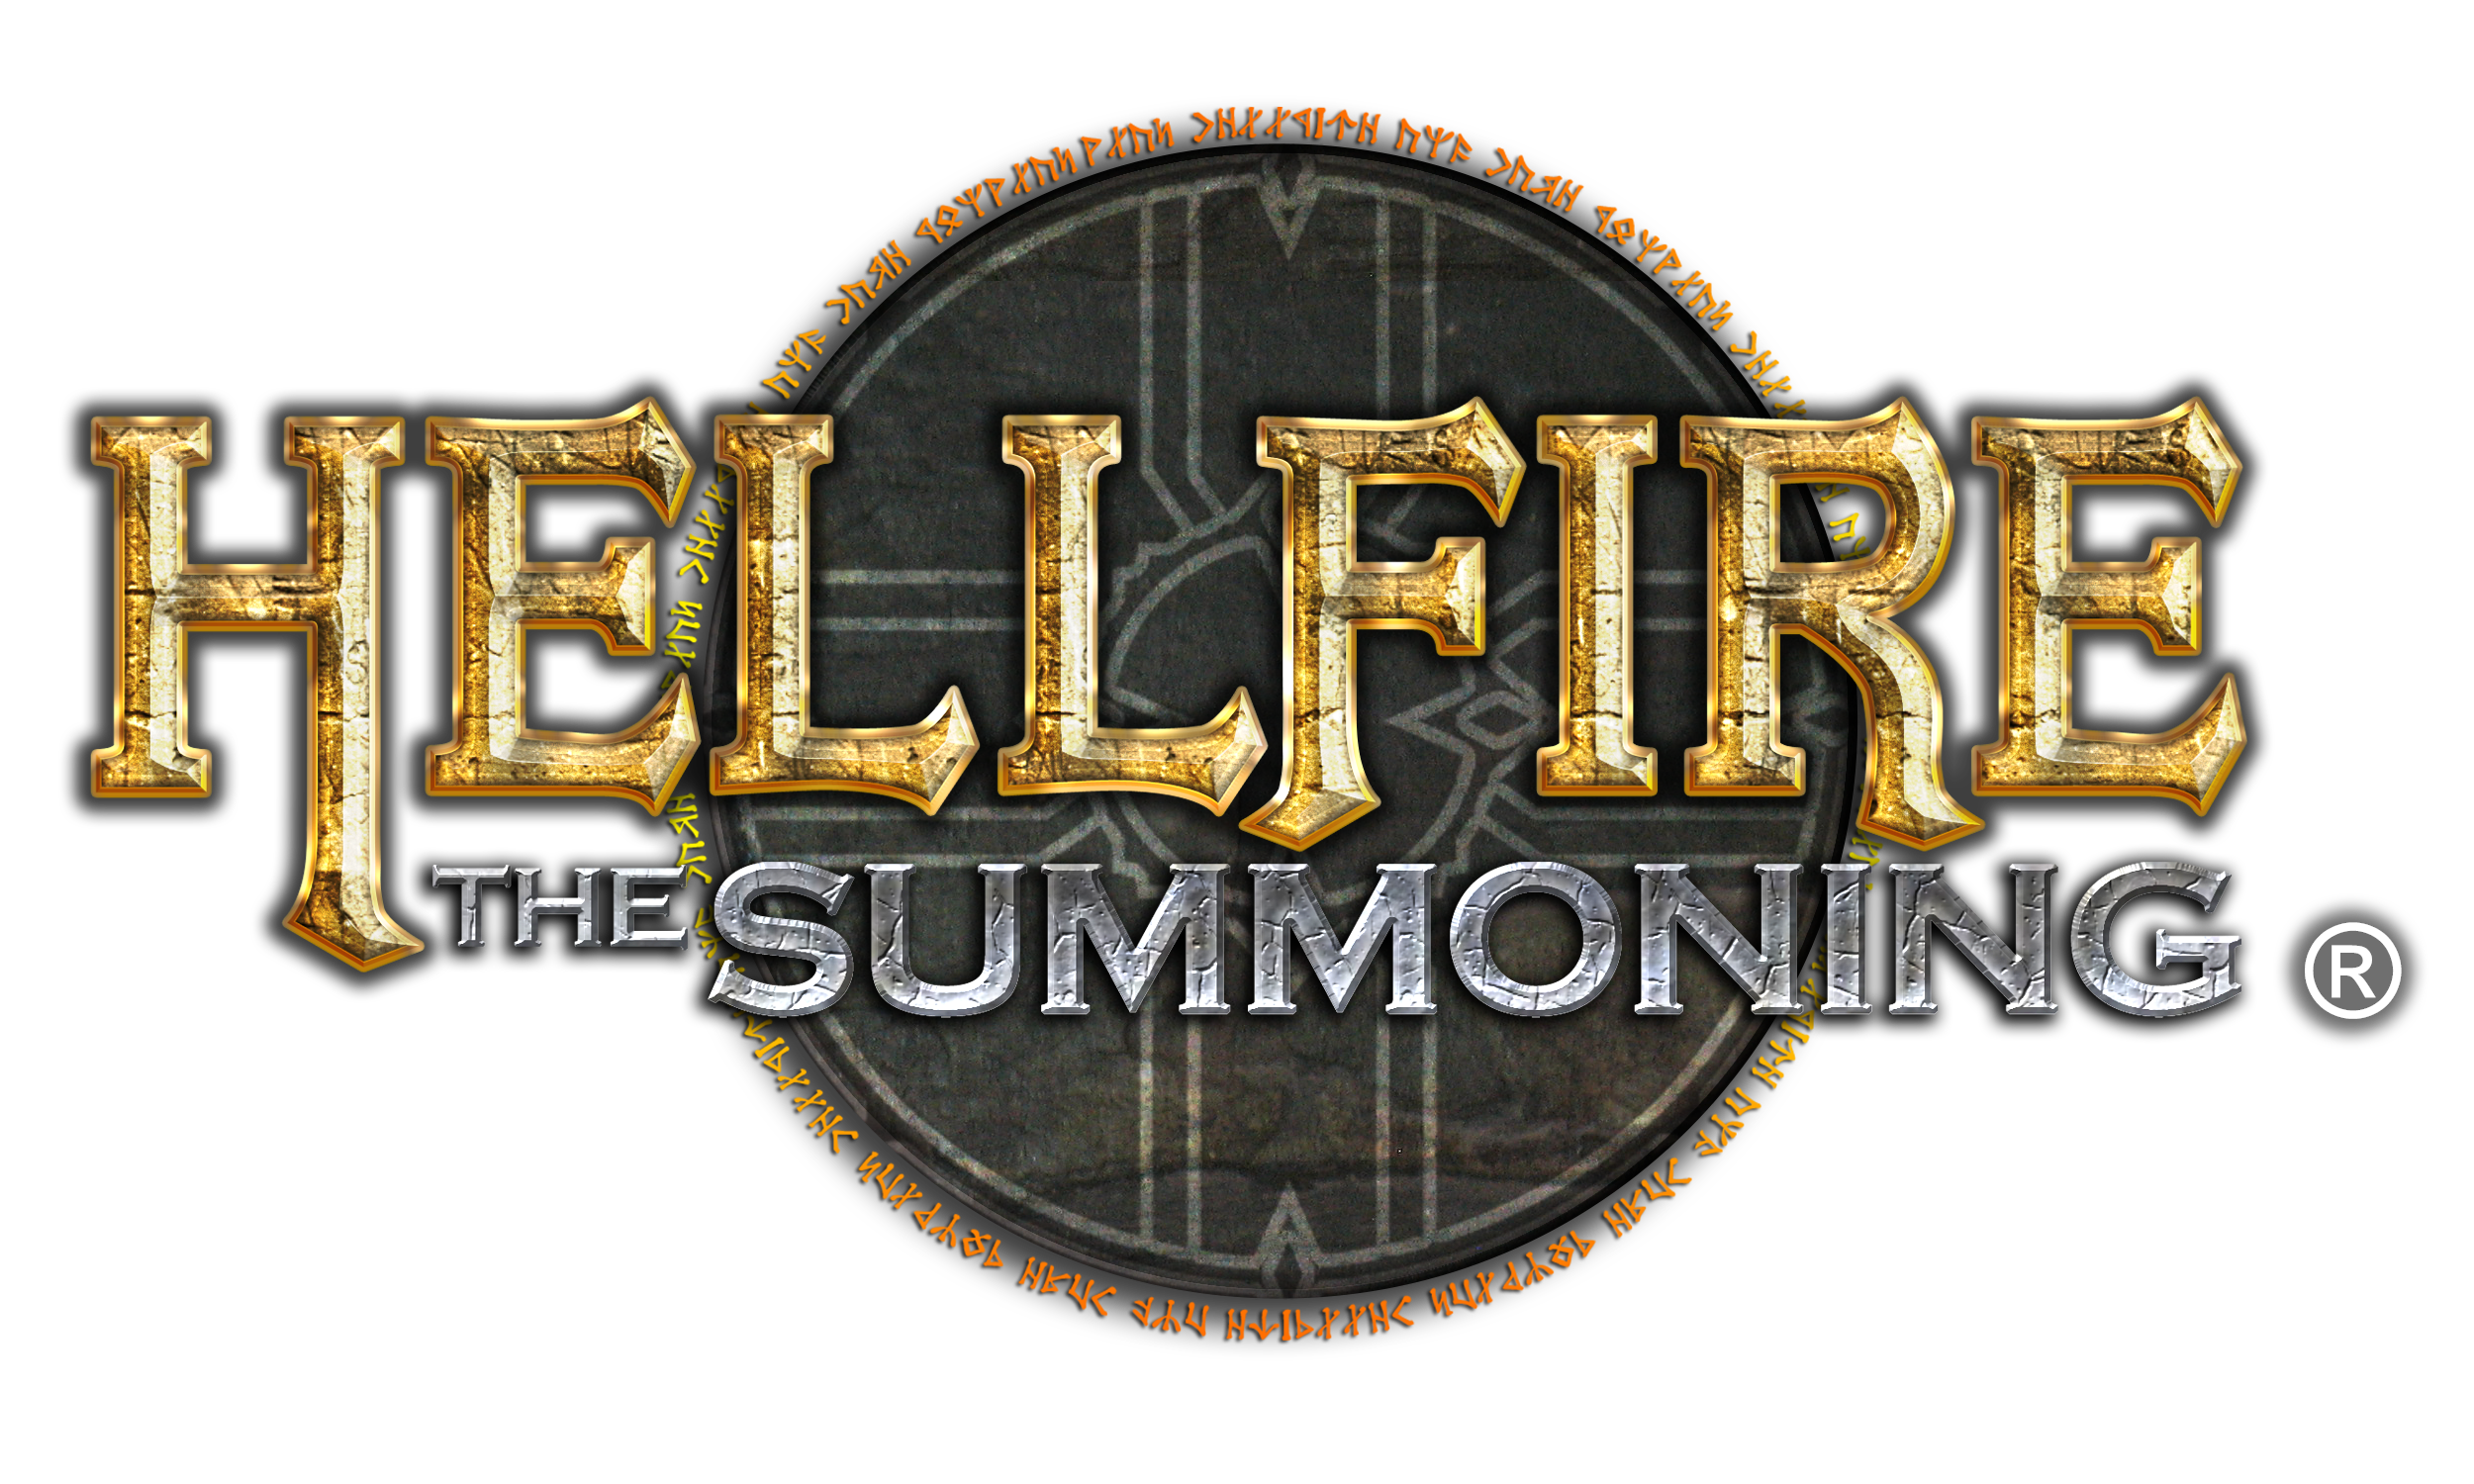 Because why not summon some HellFire?